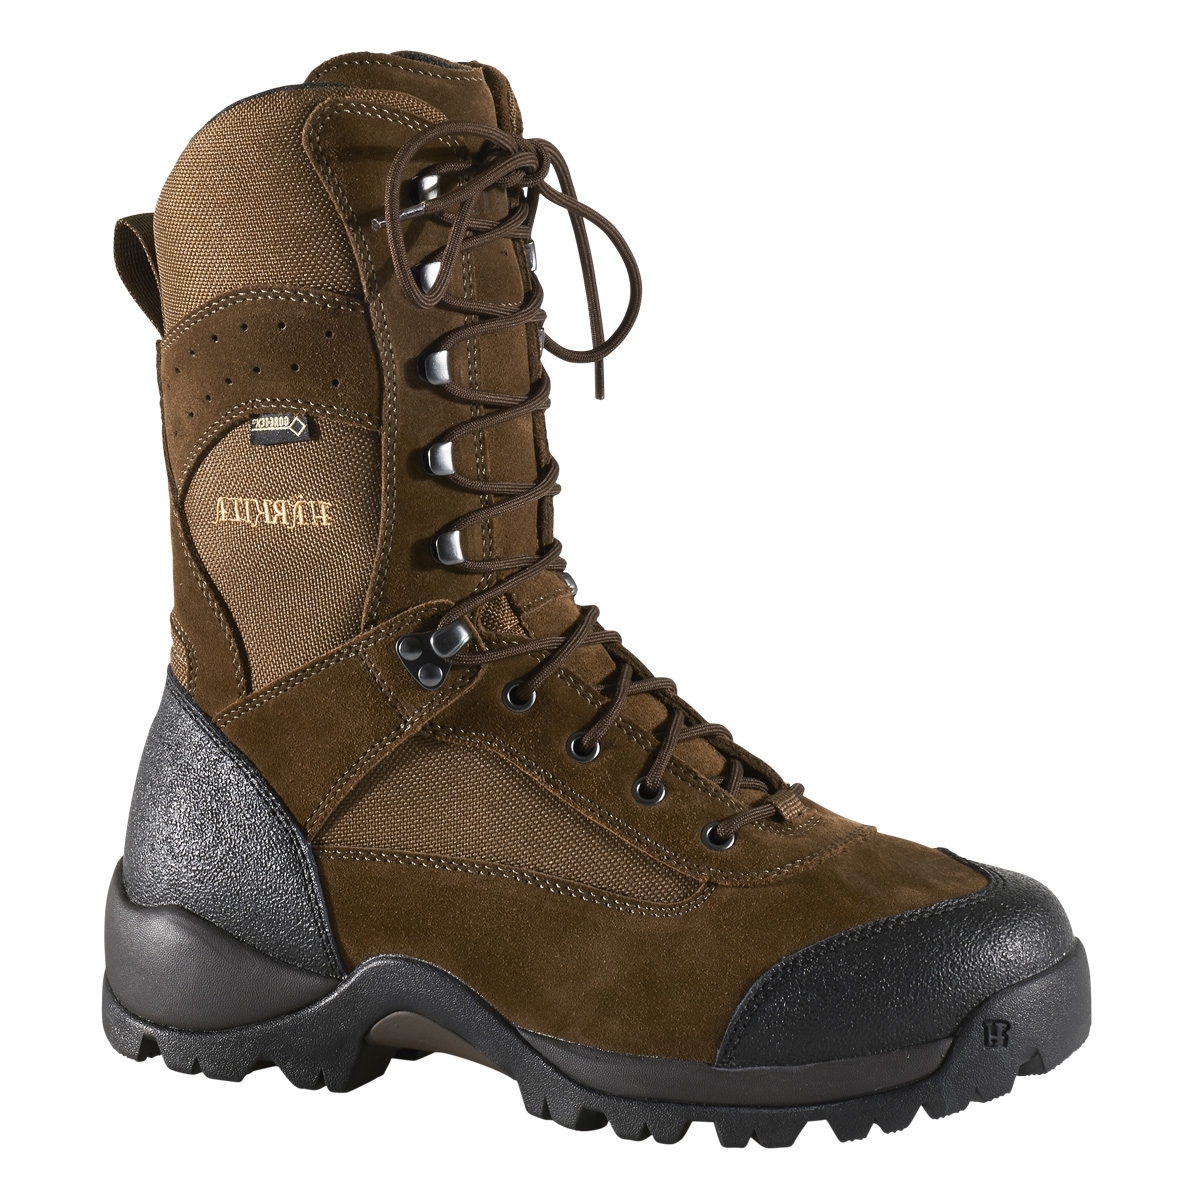 6c843960d40 Harkila Elk Hunter GTX 10 Inch XL Insulated Walking Boots (Men's) - Dark  Brown